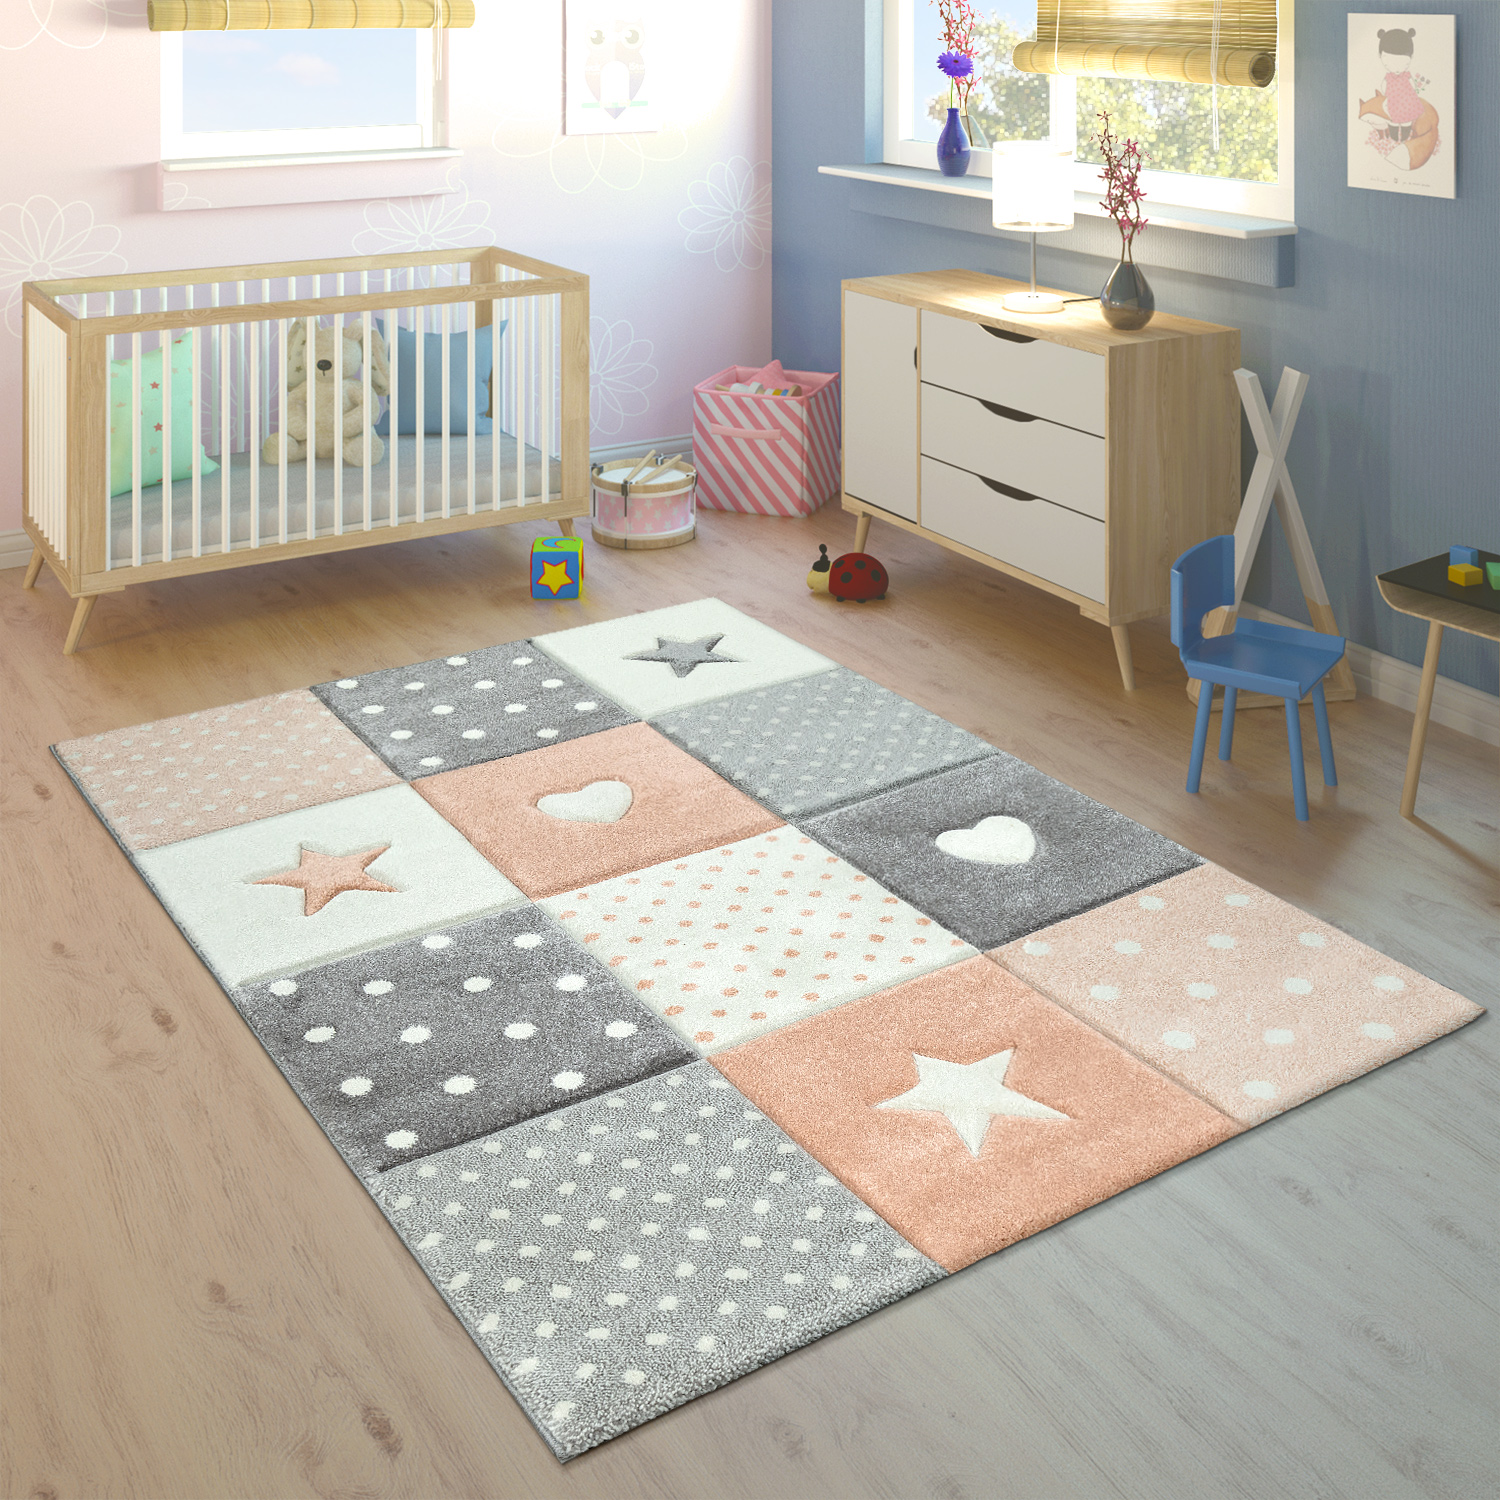 Children's Rug Children's Room Checked Dots Hearts Stars in Pastel Apricot Grey